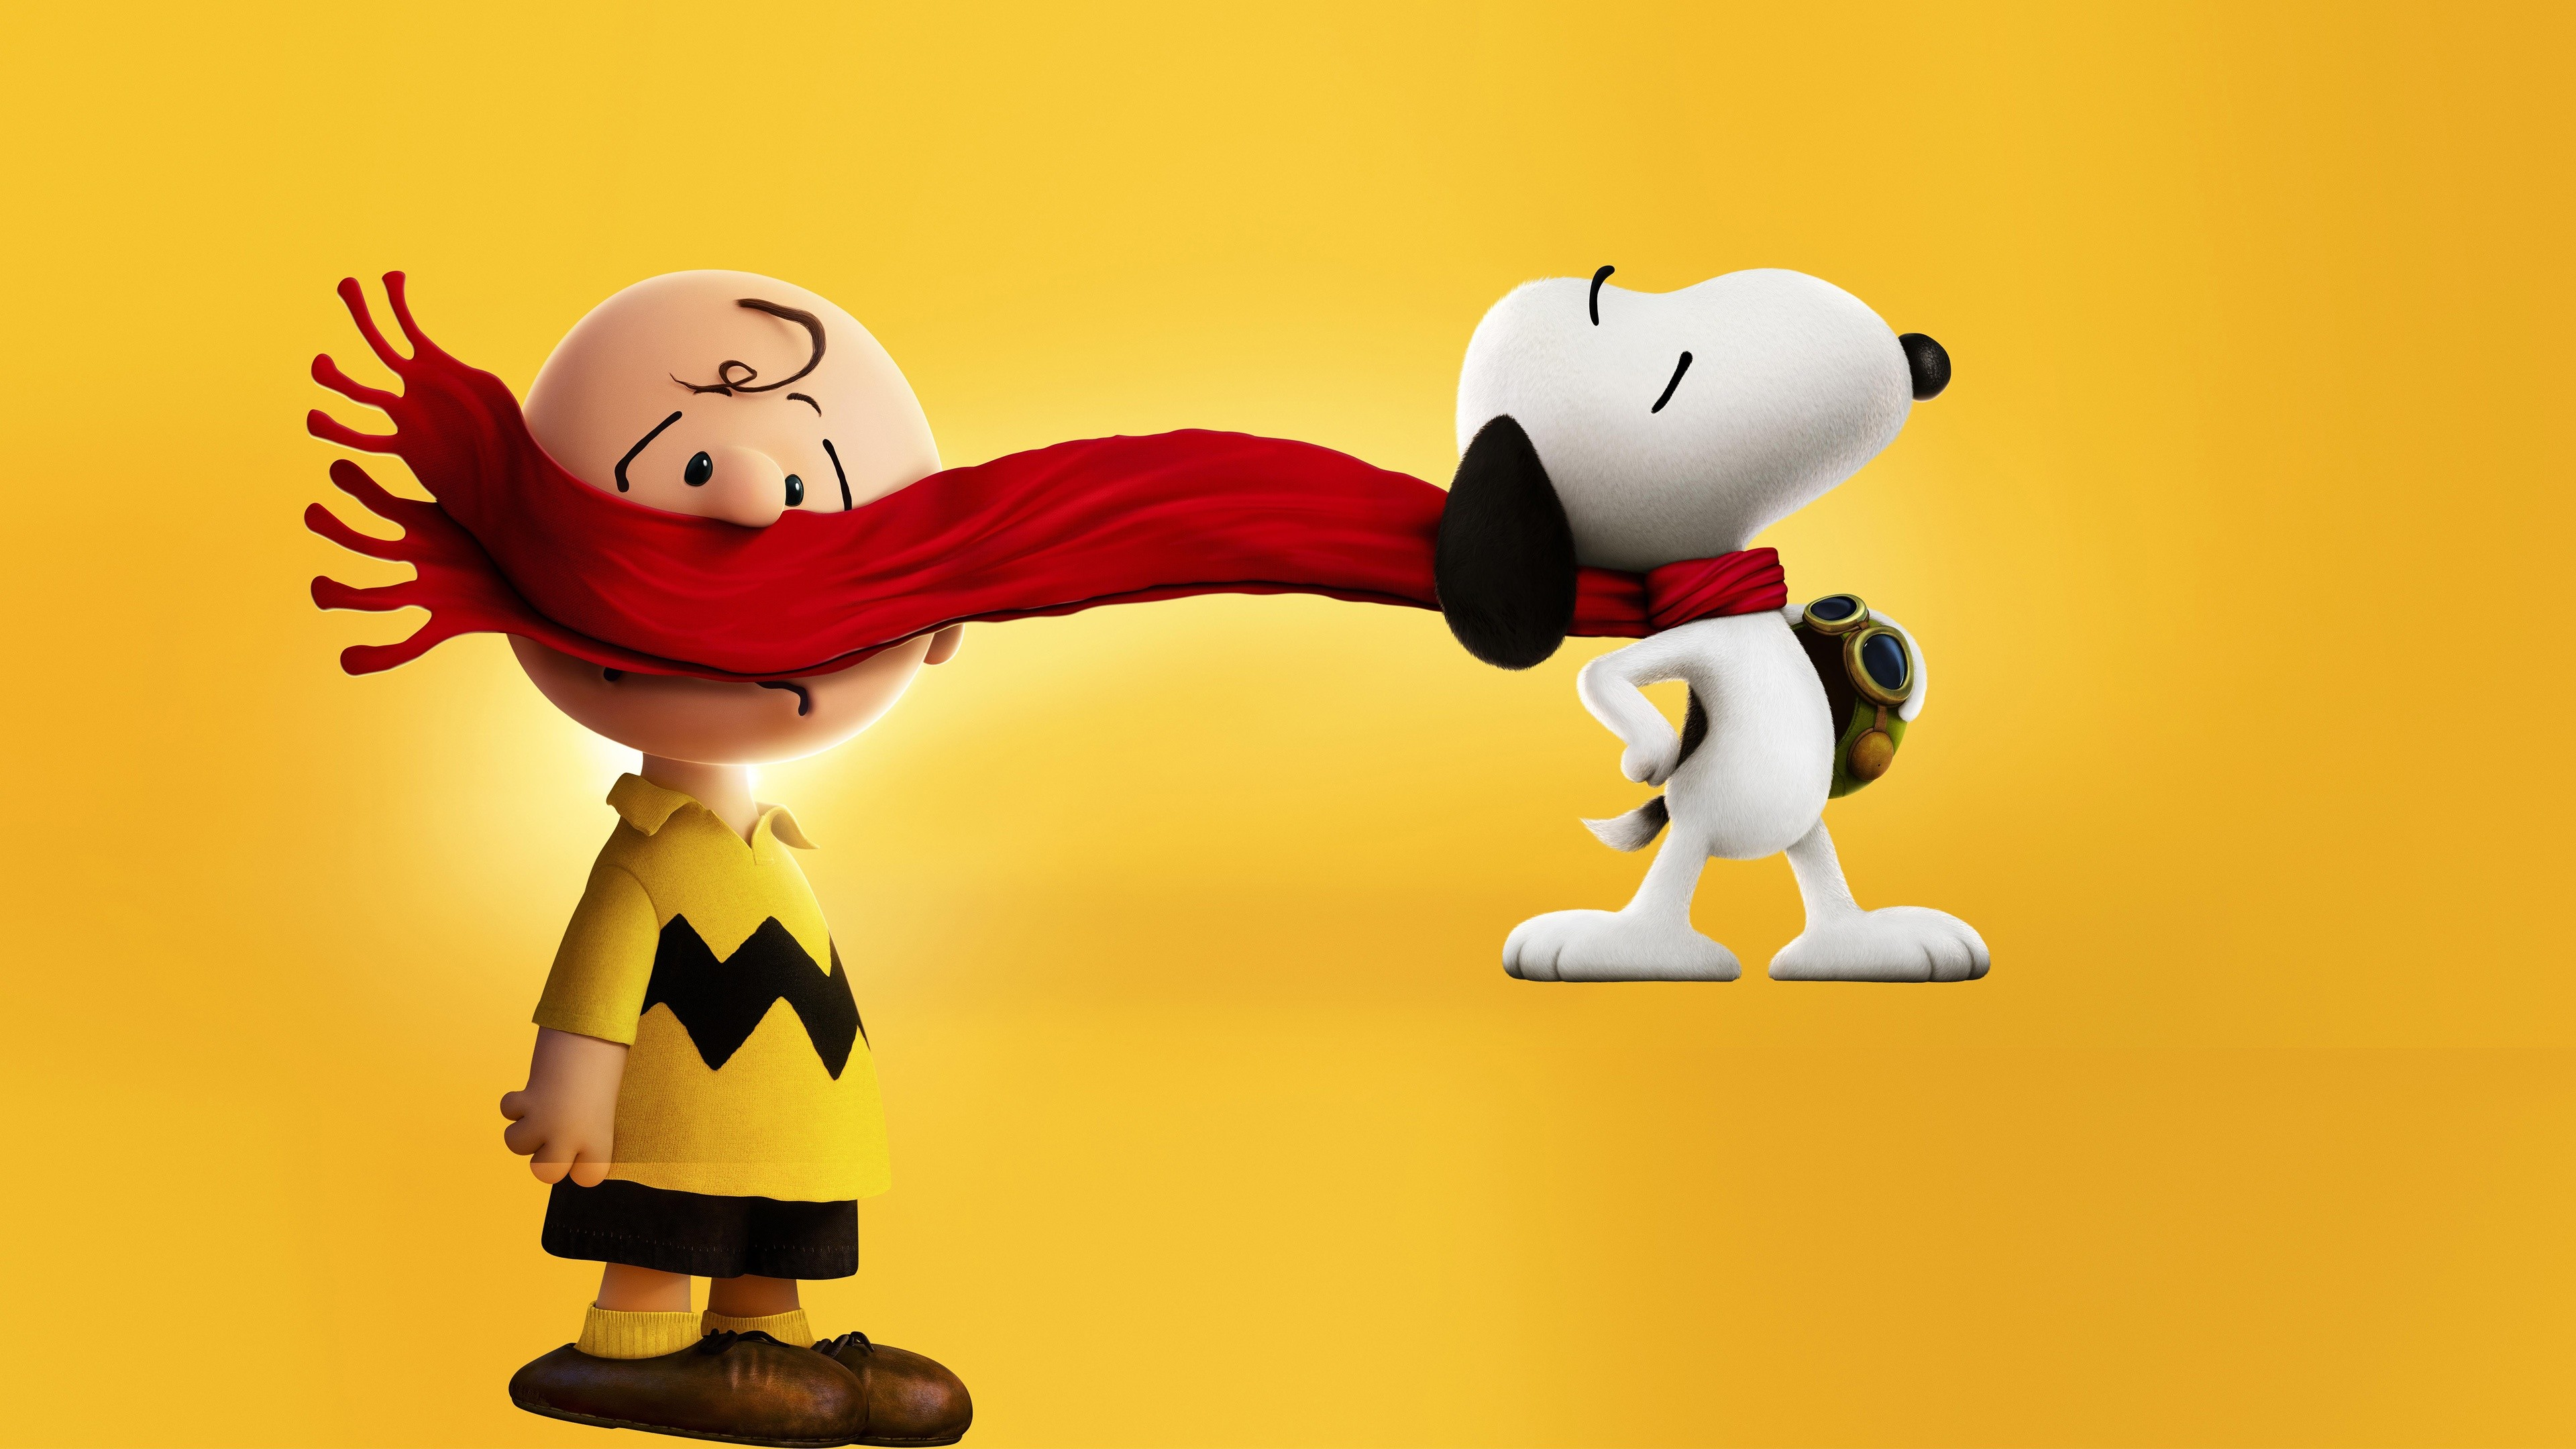 Snoopy thanksgiving wallpaper 55 images 1920x1200 disney thanksgiving wallpaper desktop background voltagebd Images